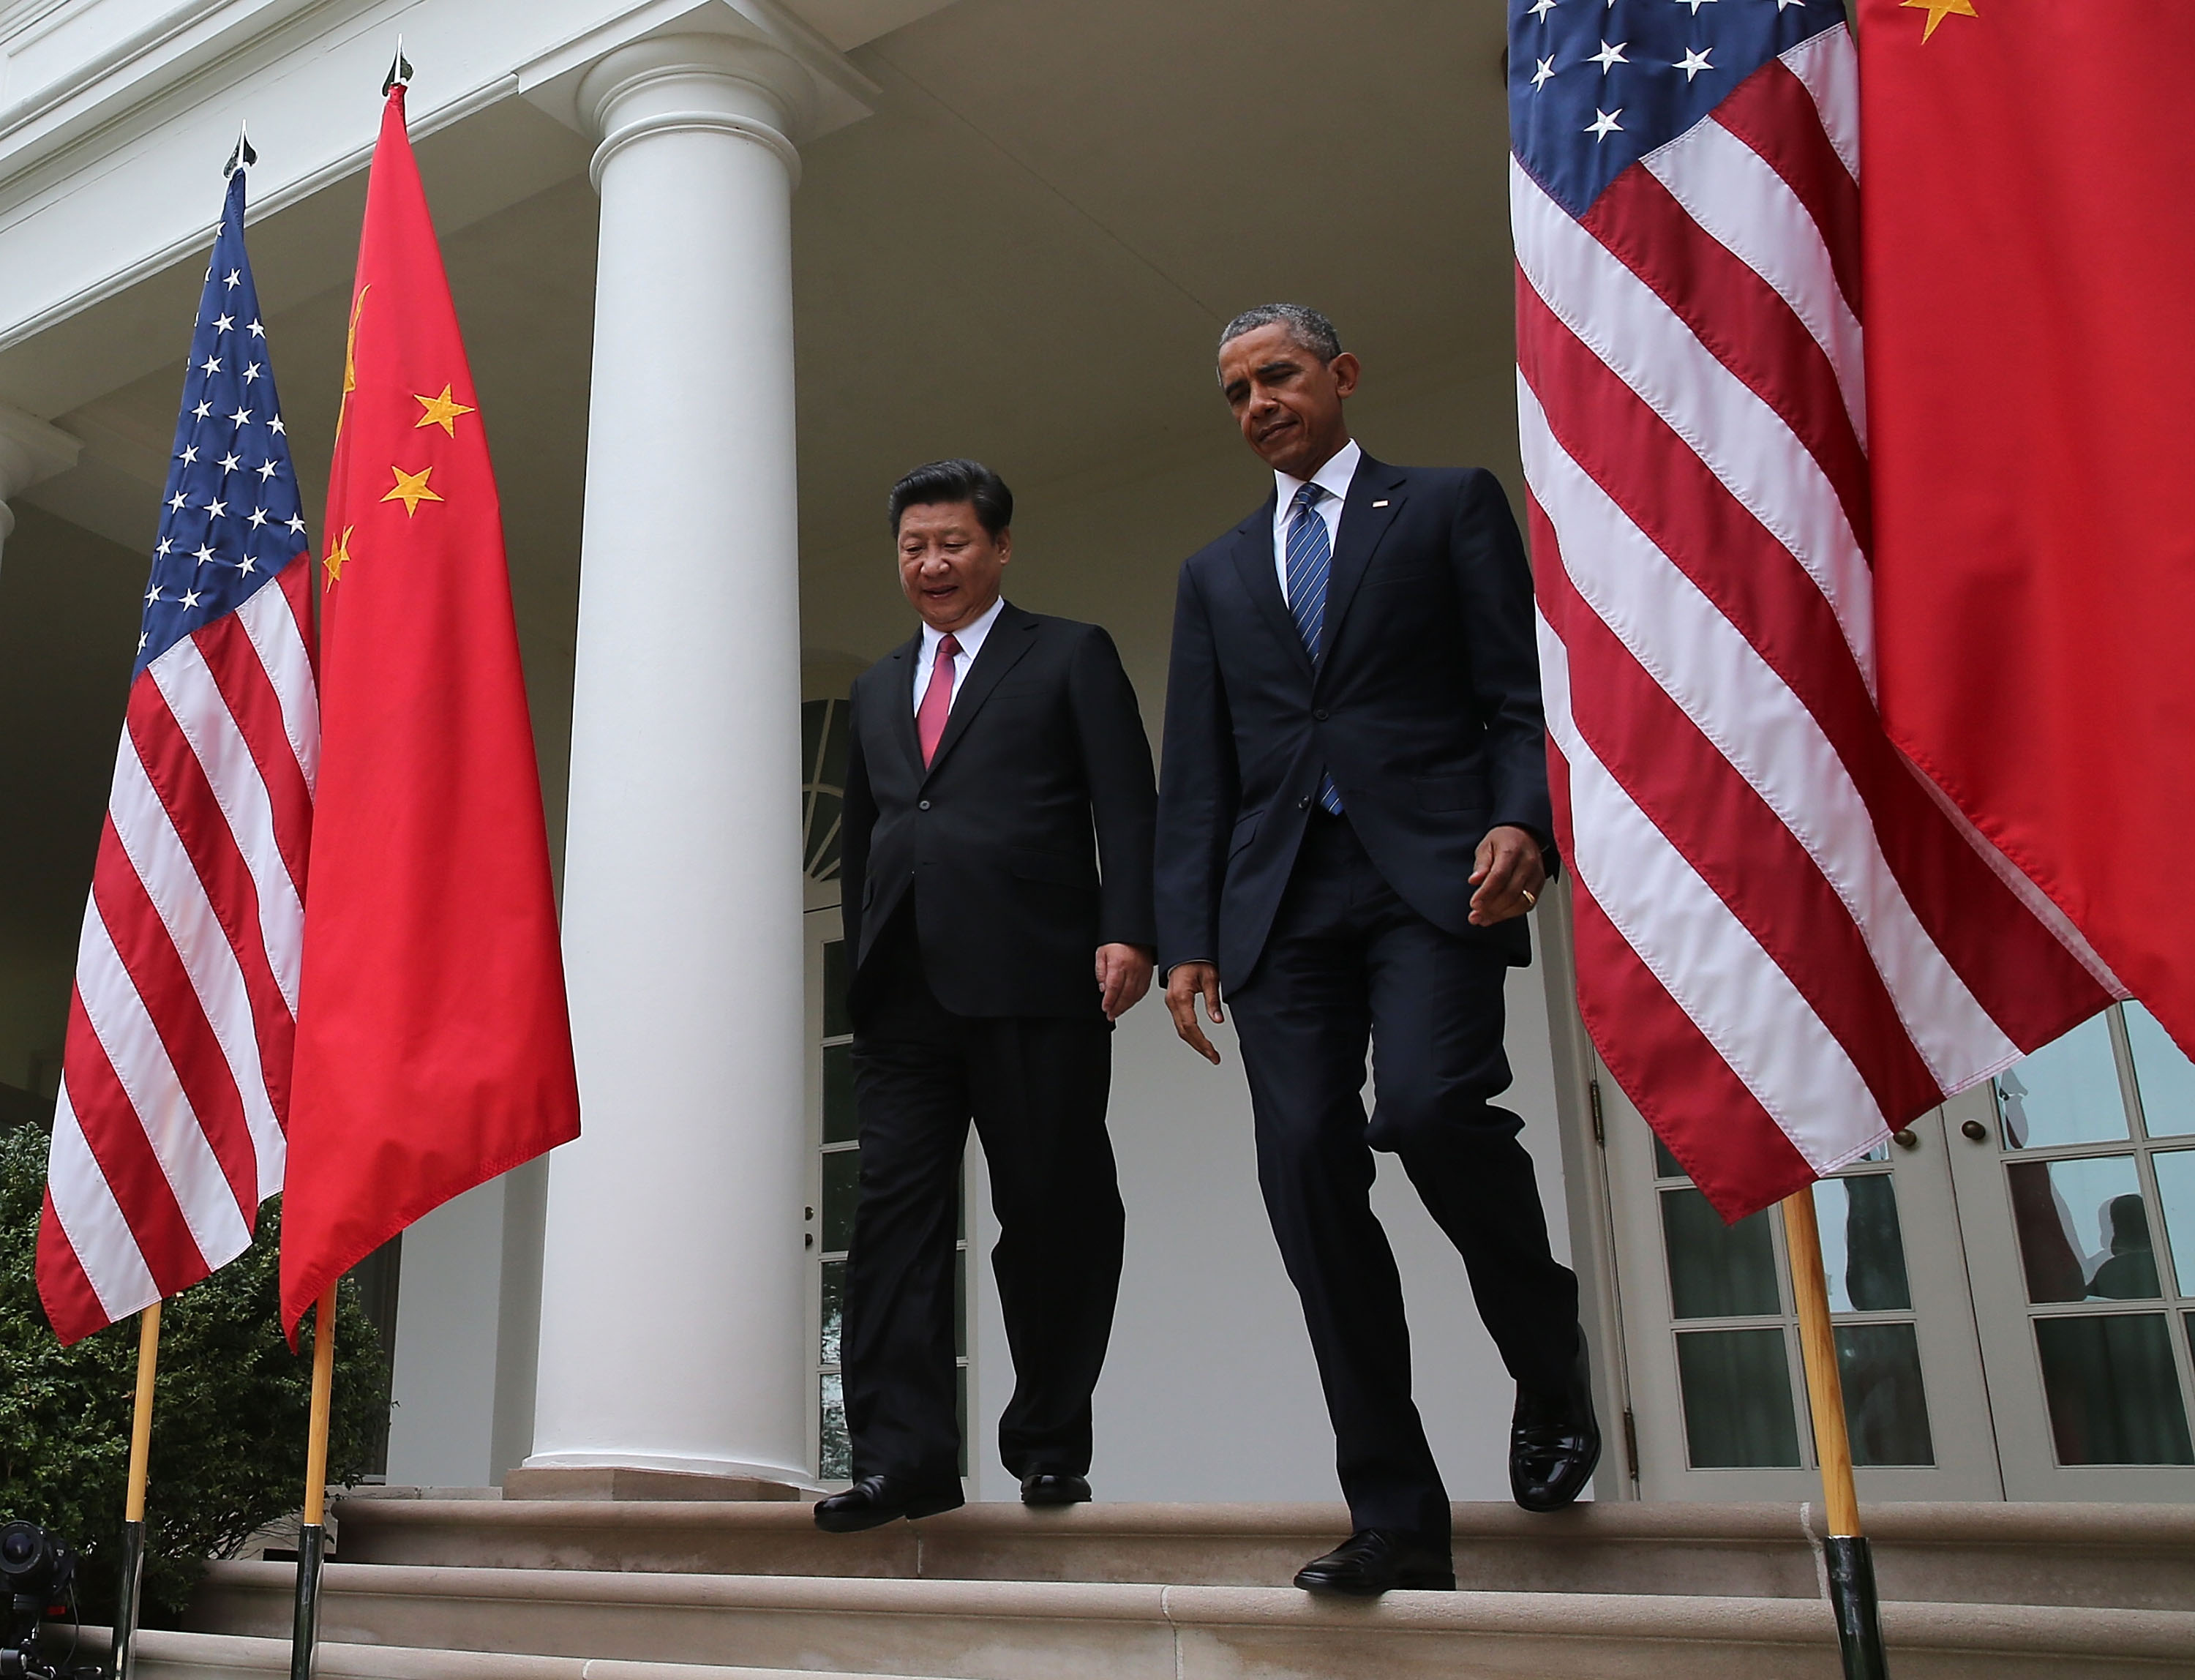 U.S. President Barack Obama (R) and Chinese President Xi Jinping walk arrive to a joint news conference at The White House on Sept. 25, 2015 in Washington, DC